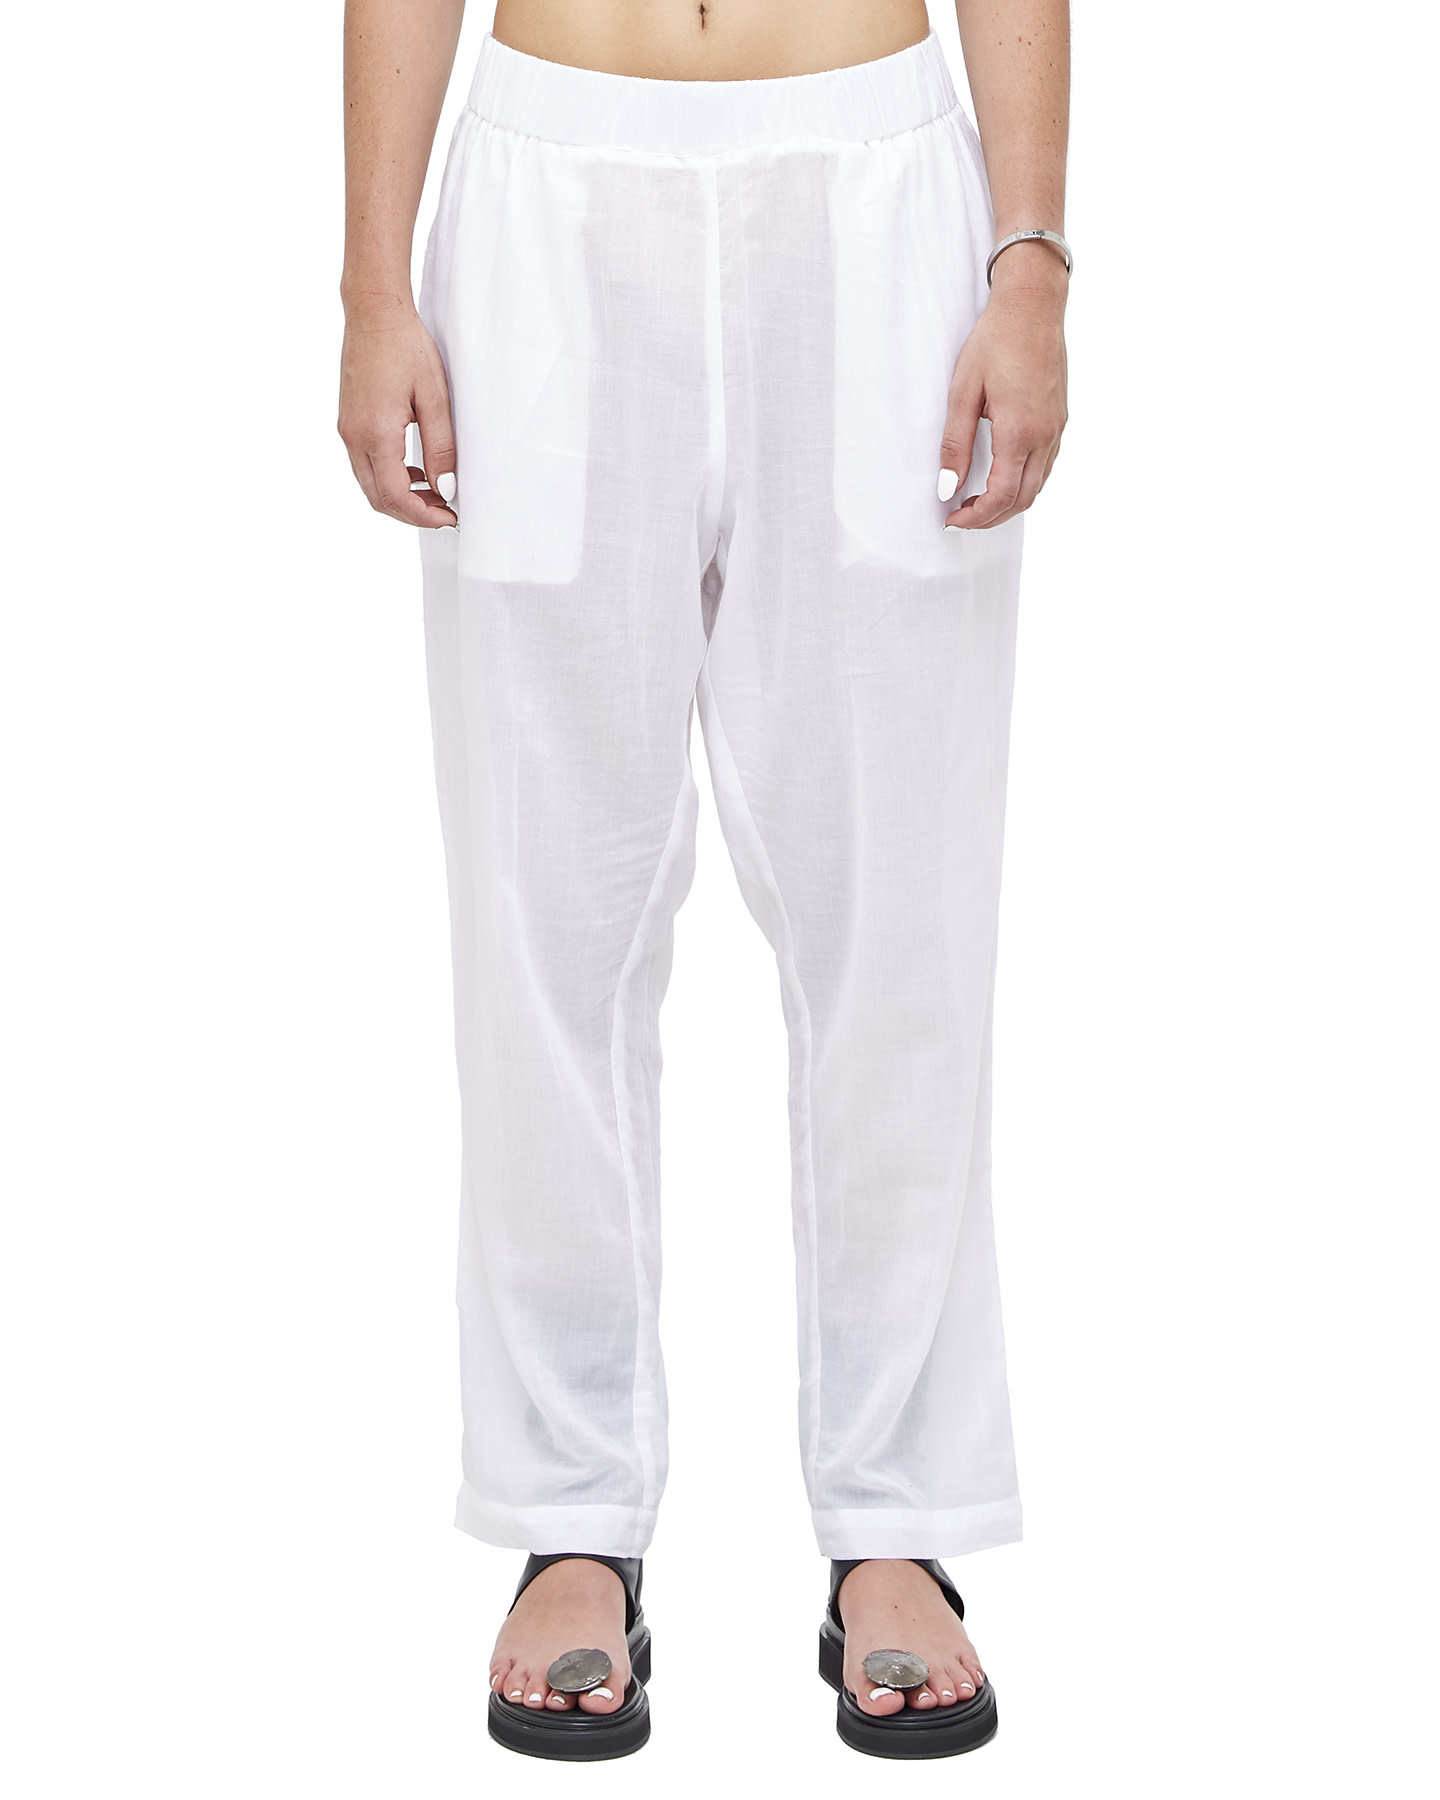 LUCER LOW CROTCH COTTON GAUZE TROUSERS - WHITE